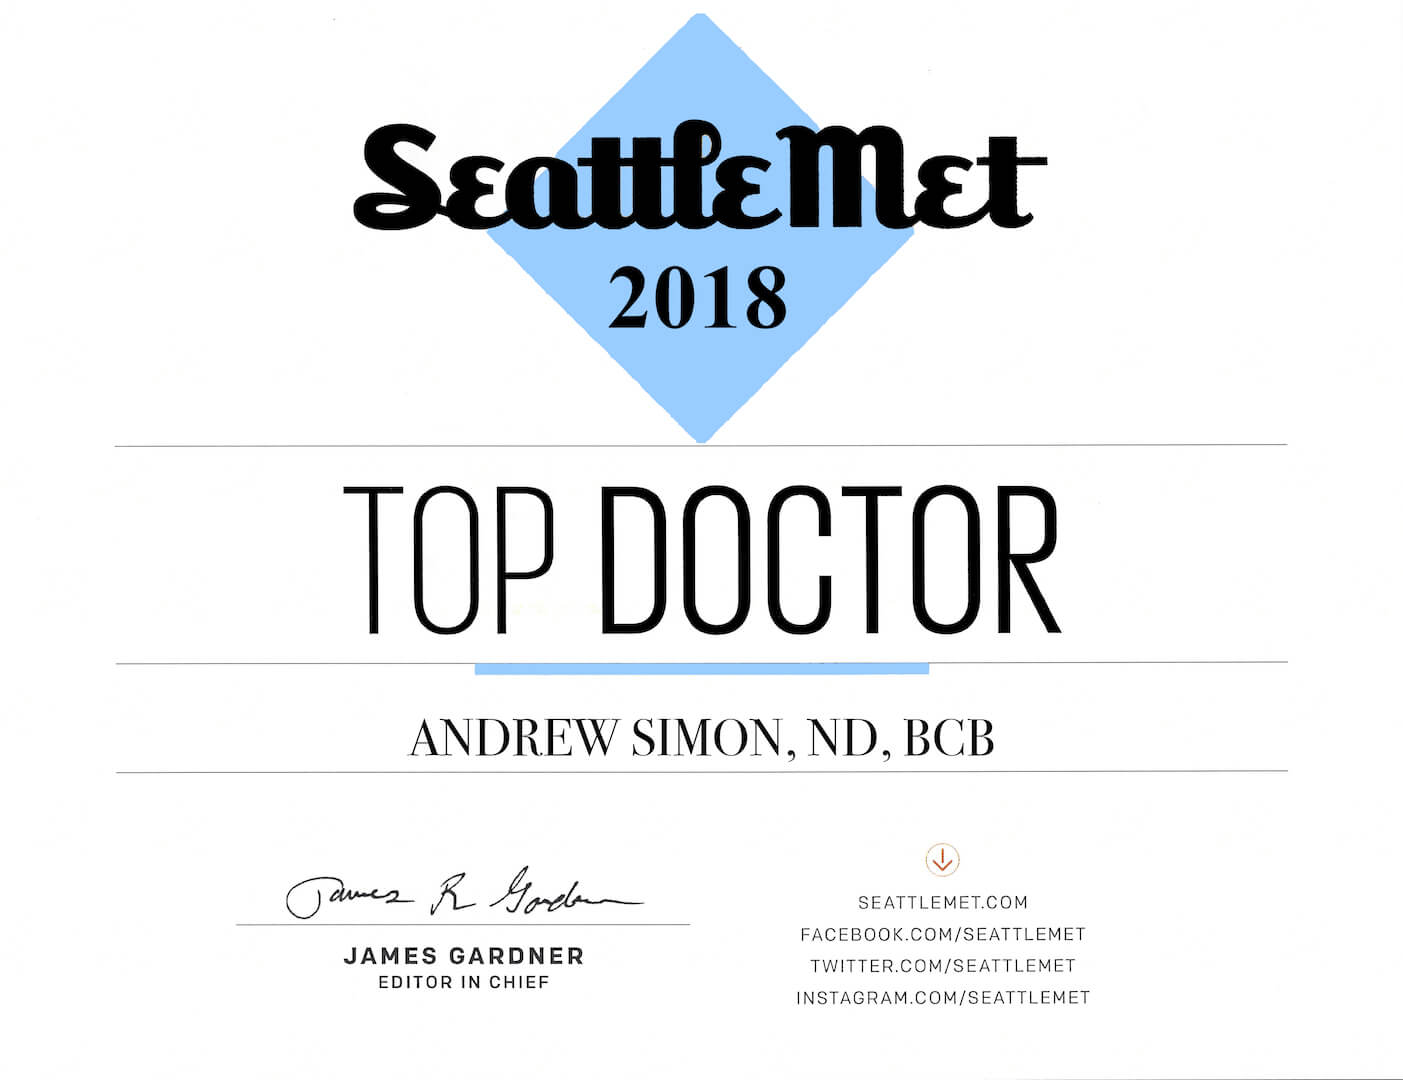 Seattle Met Top Doctor 2018